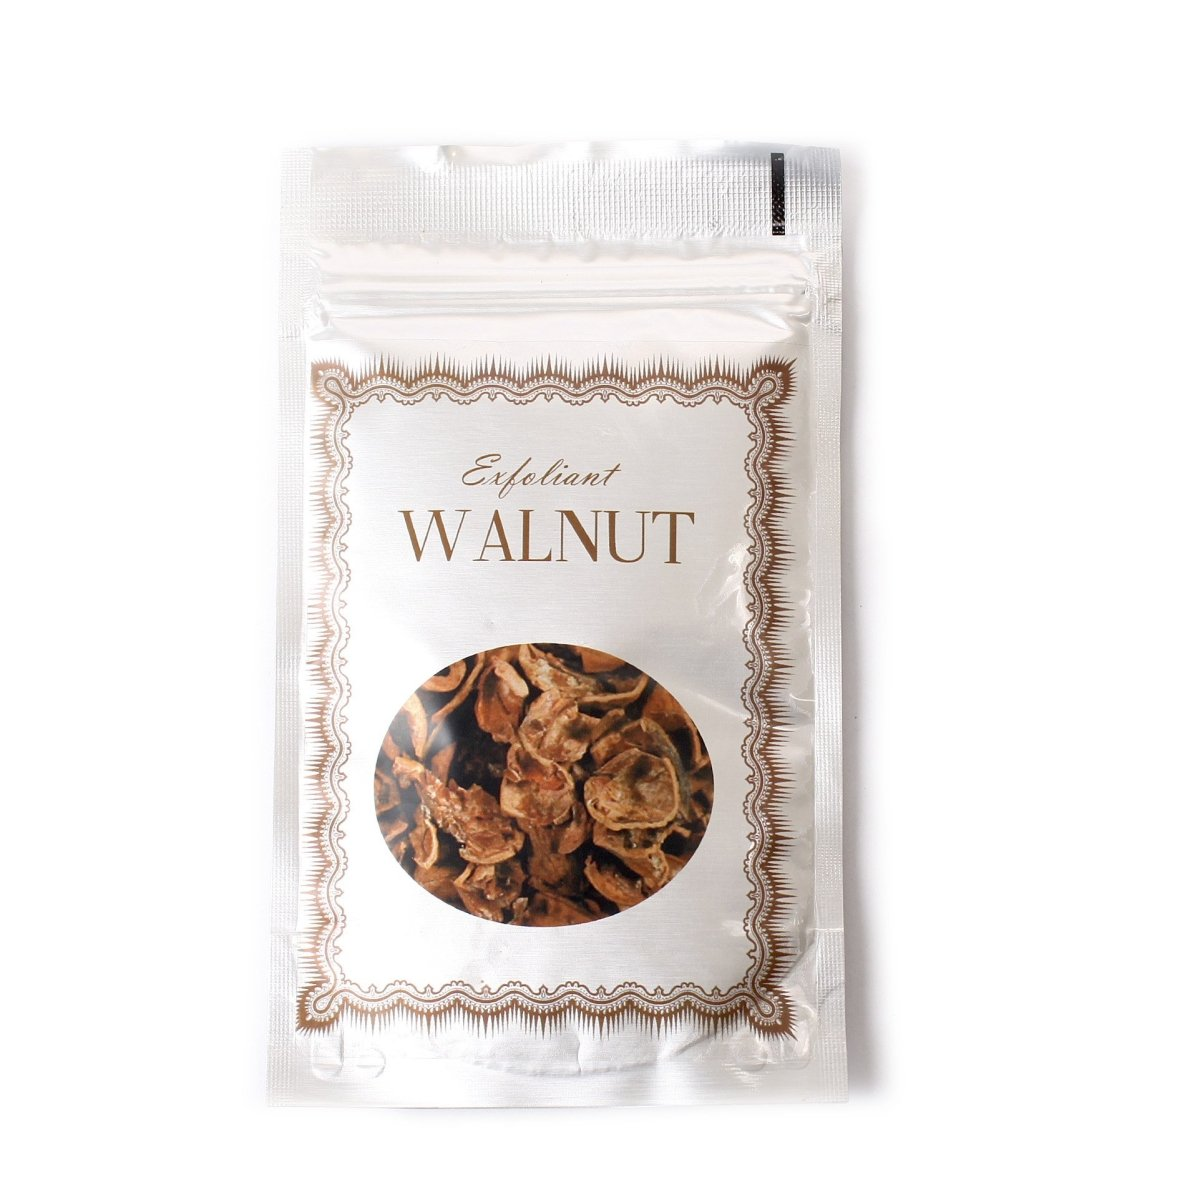 Walnut Exfoliant - Mystic Moments UK